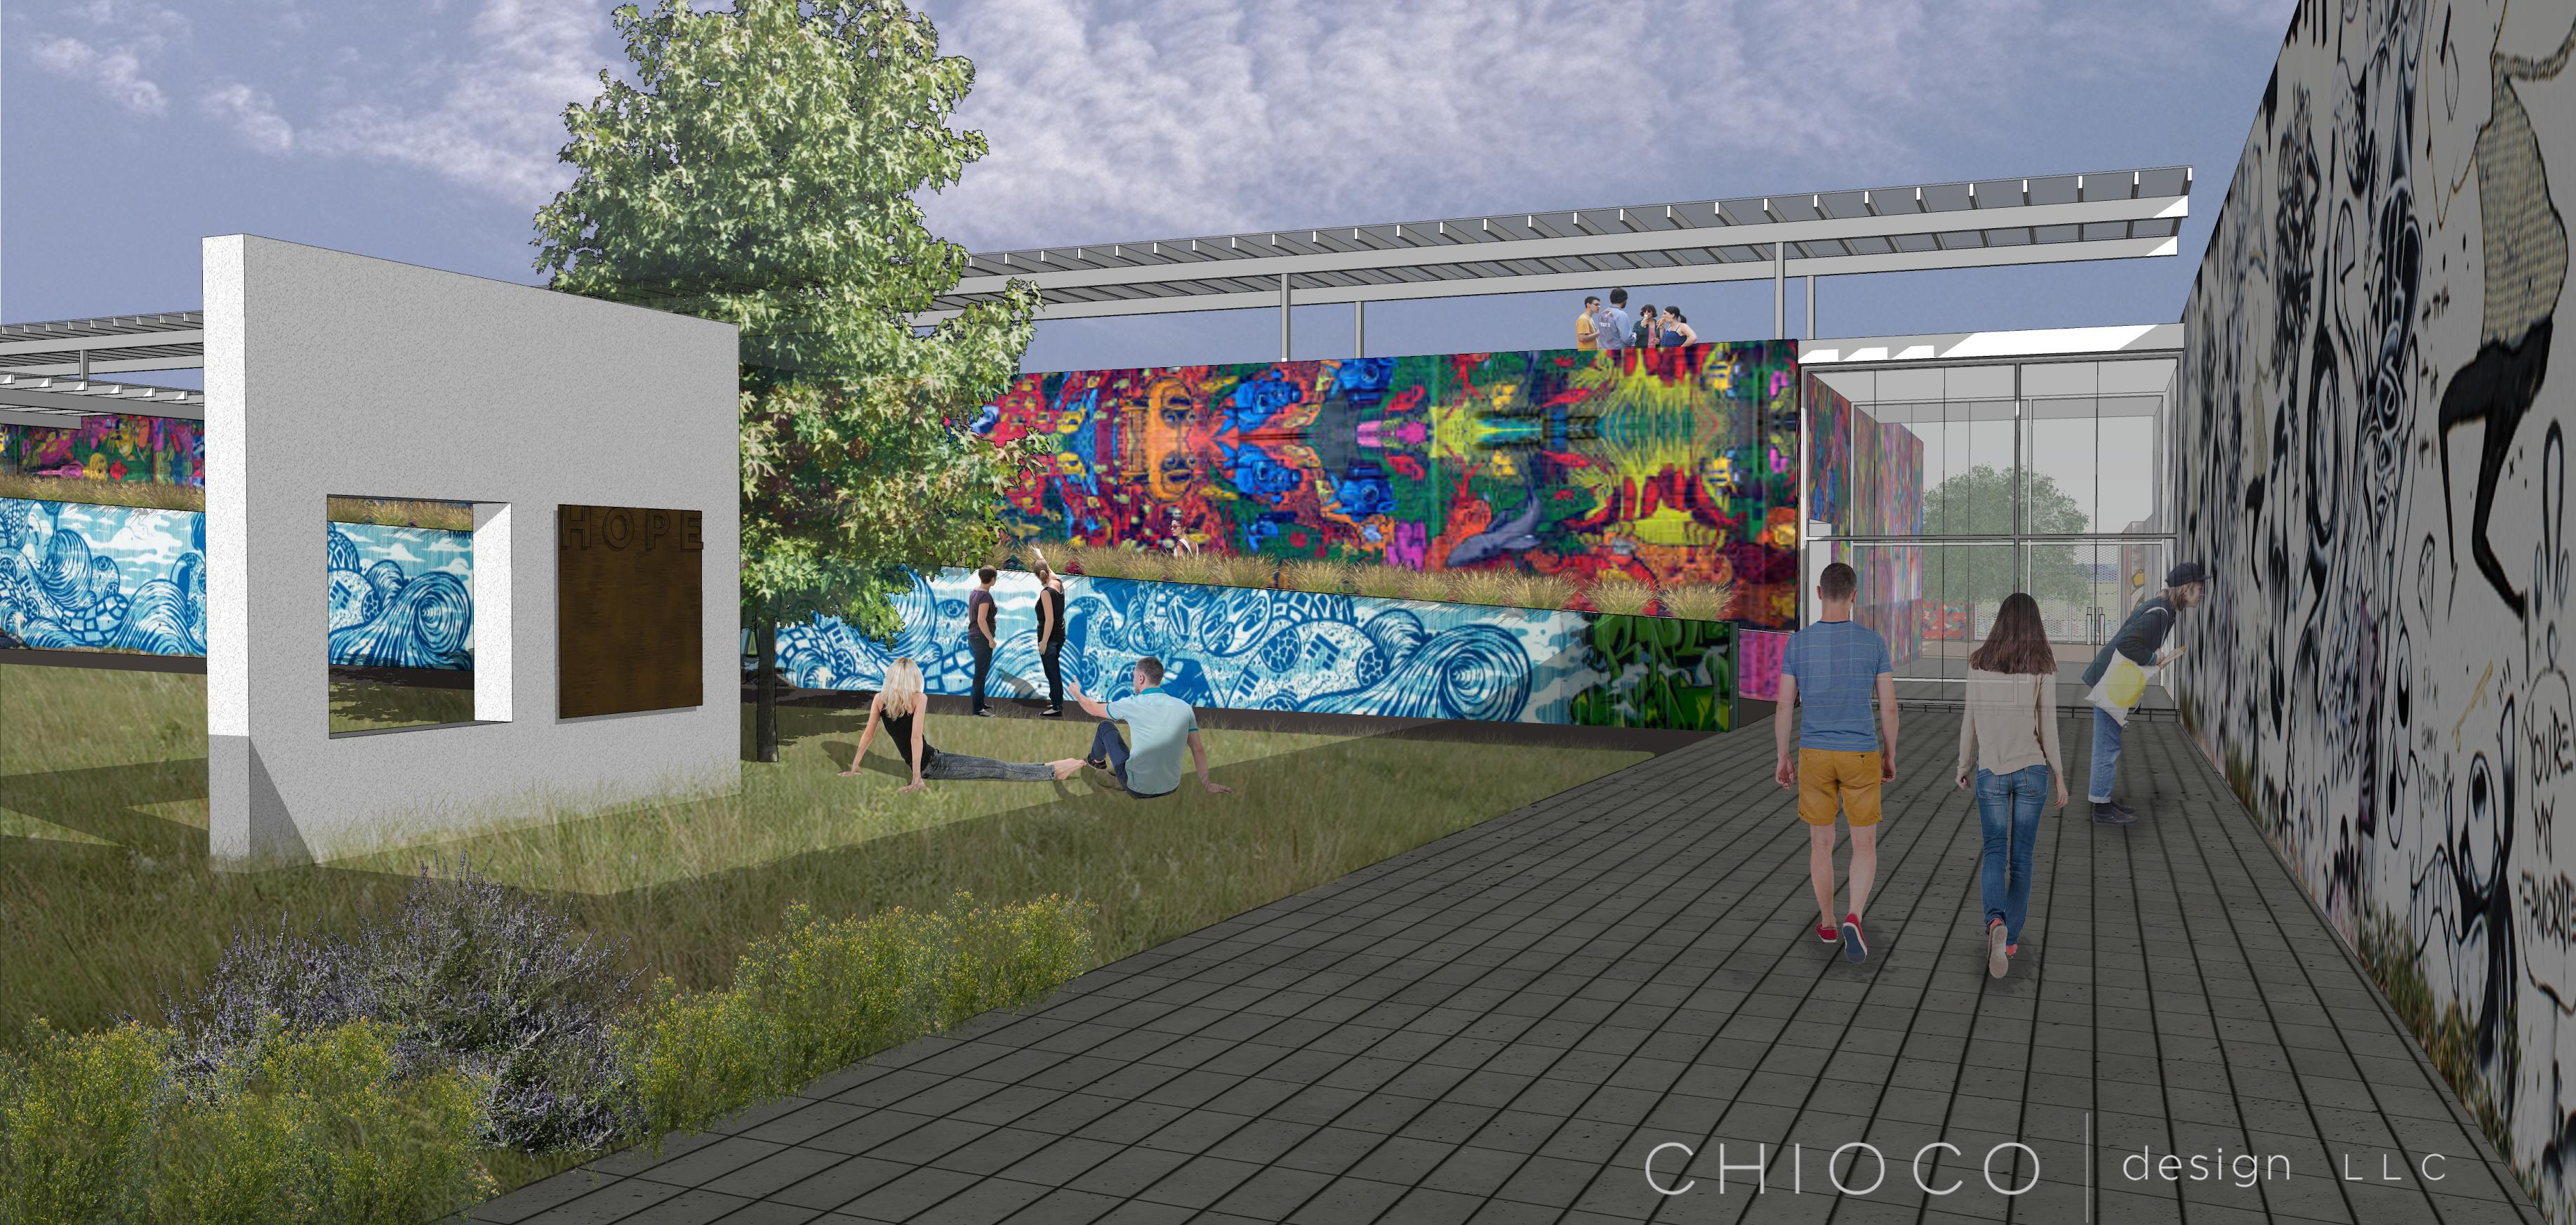 Rendering, outdoor walkway with a couple of people, wall with graffiti and blank wall